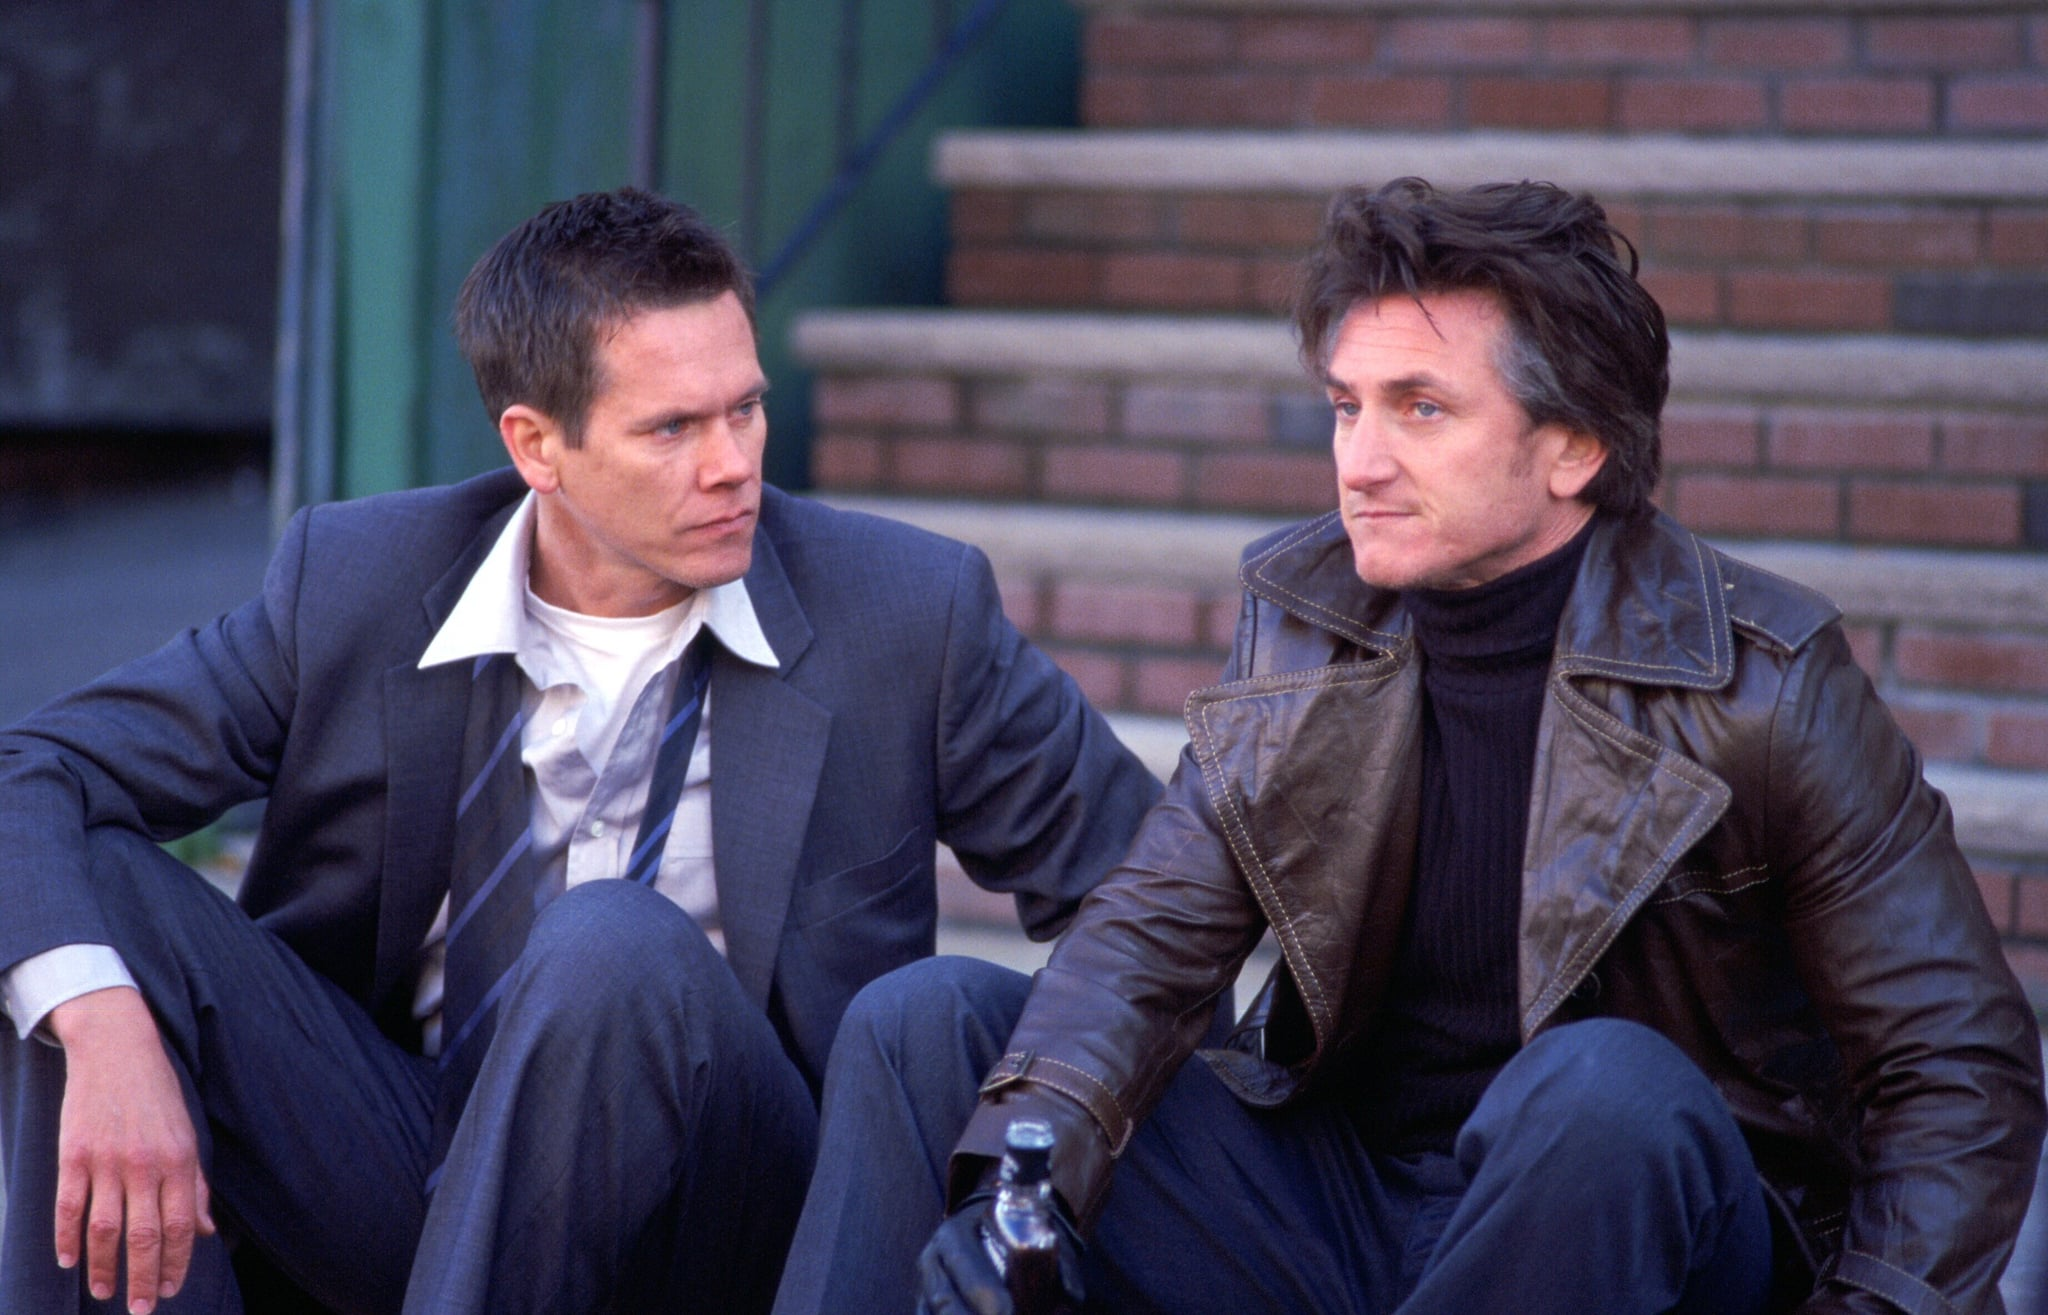 Mystic River | 36 New Movies and TV Shows on Netflix to Watch in April |  POPSUGAR Entertainment Photo 13